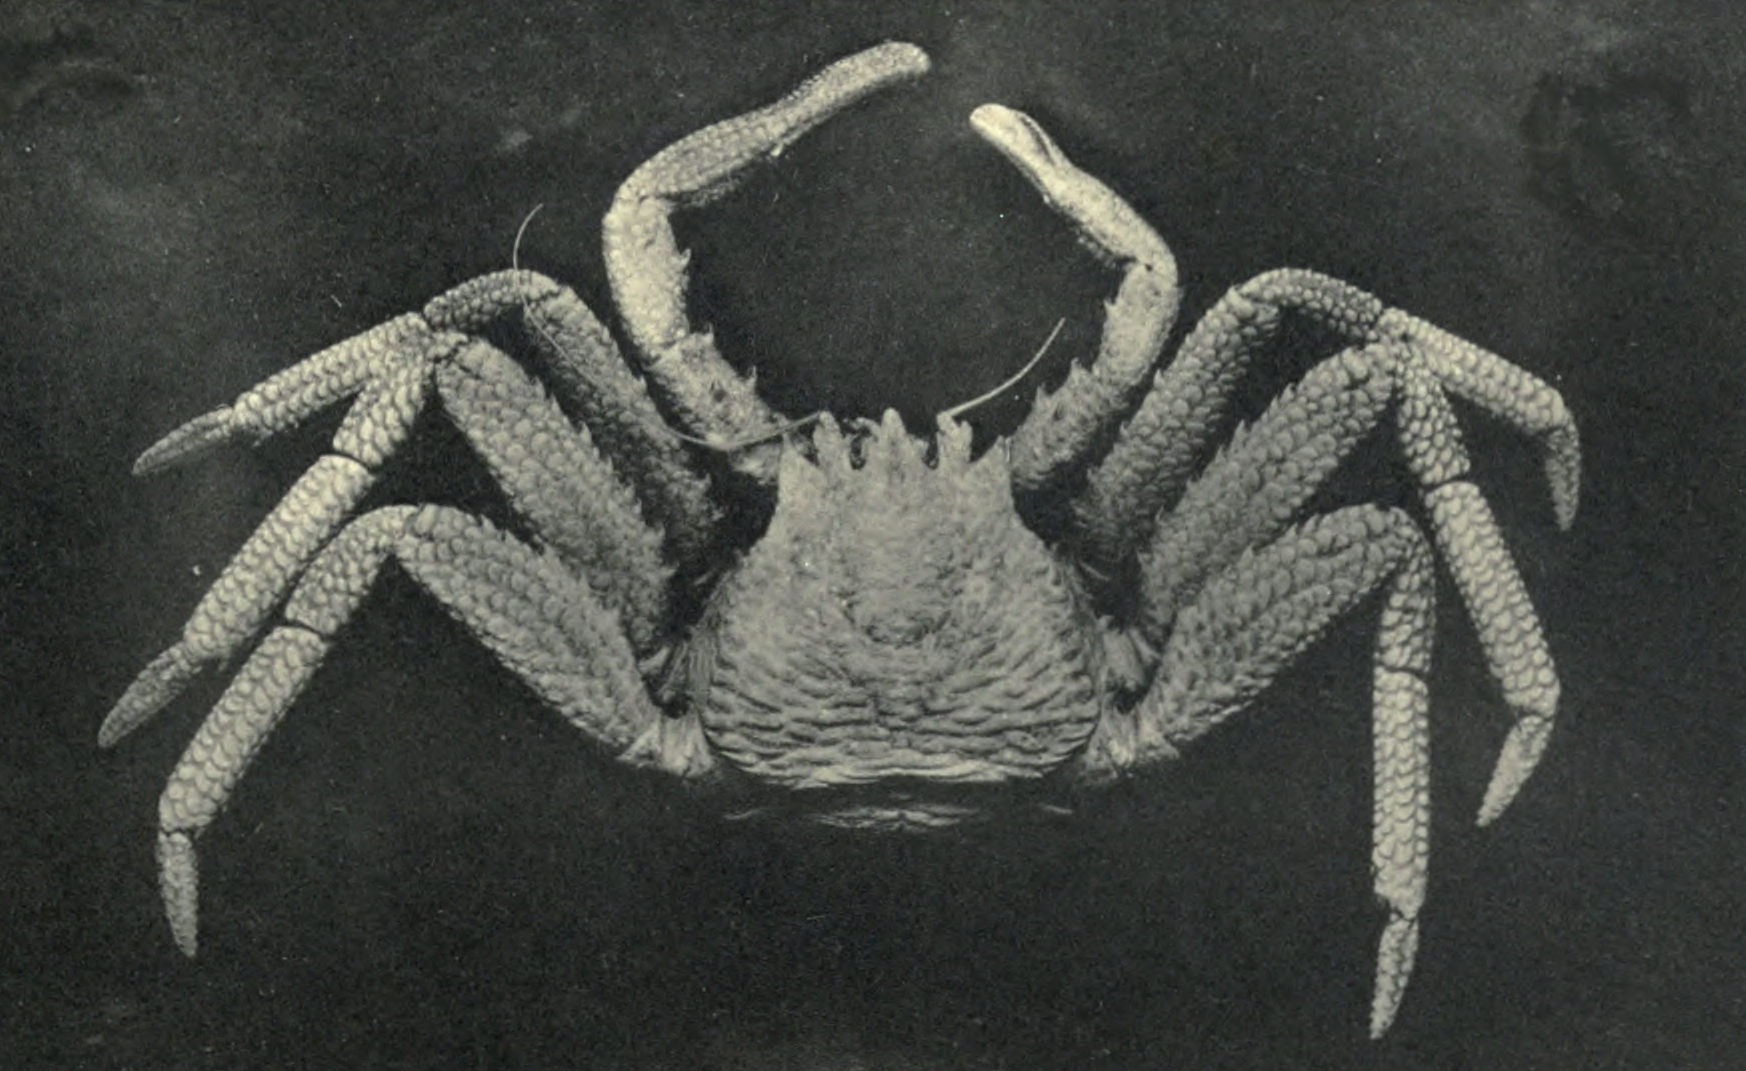 Image of scaled crab